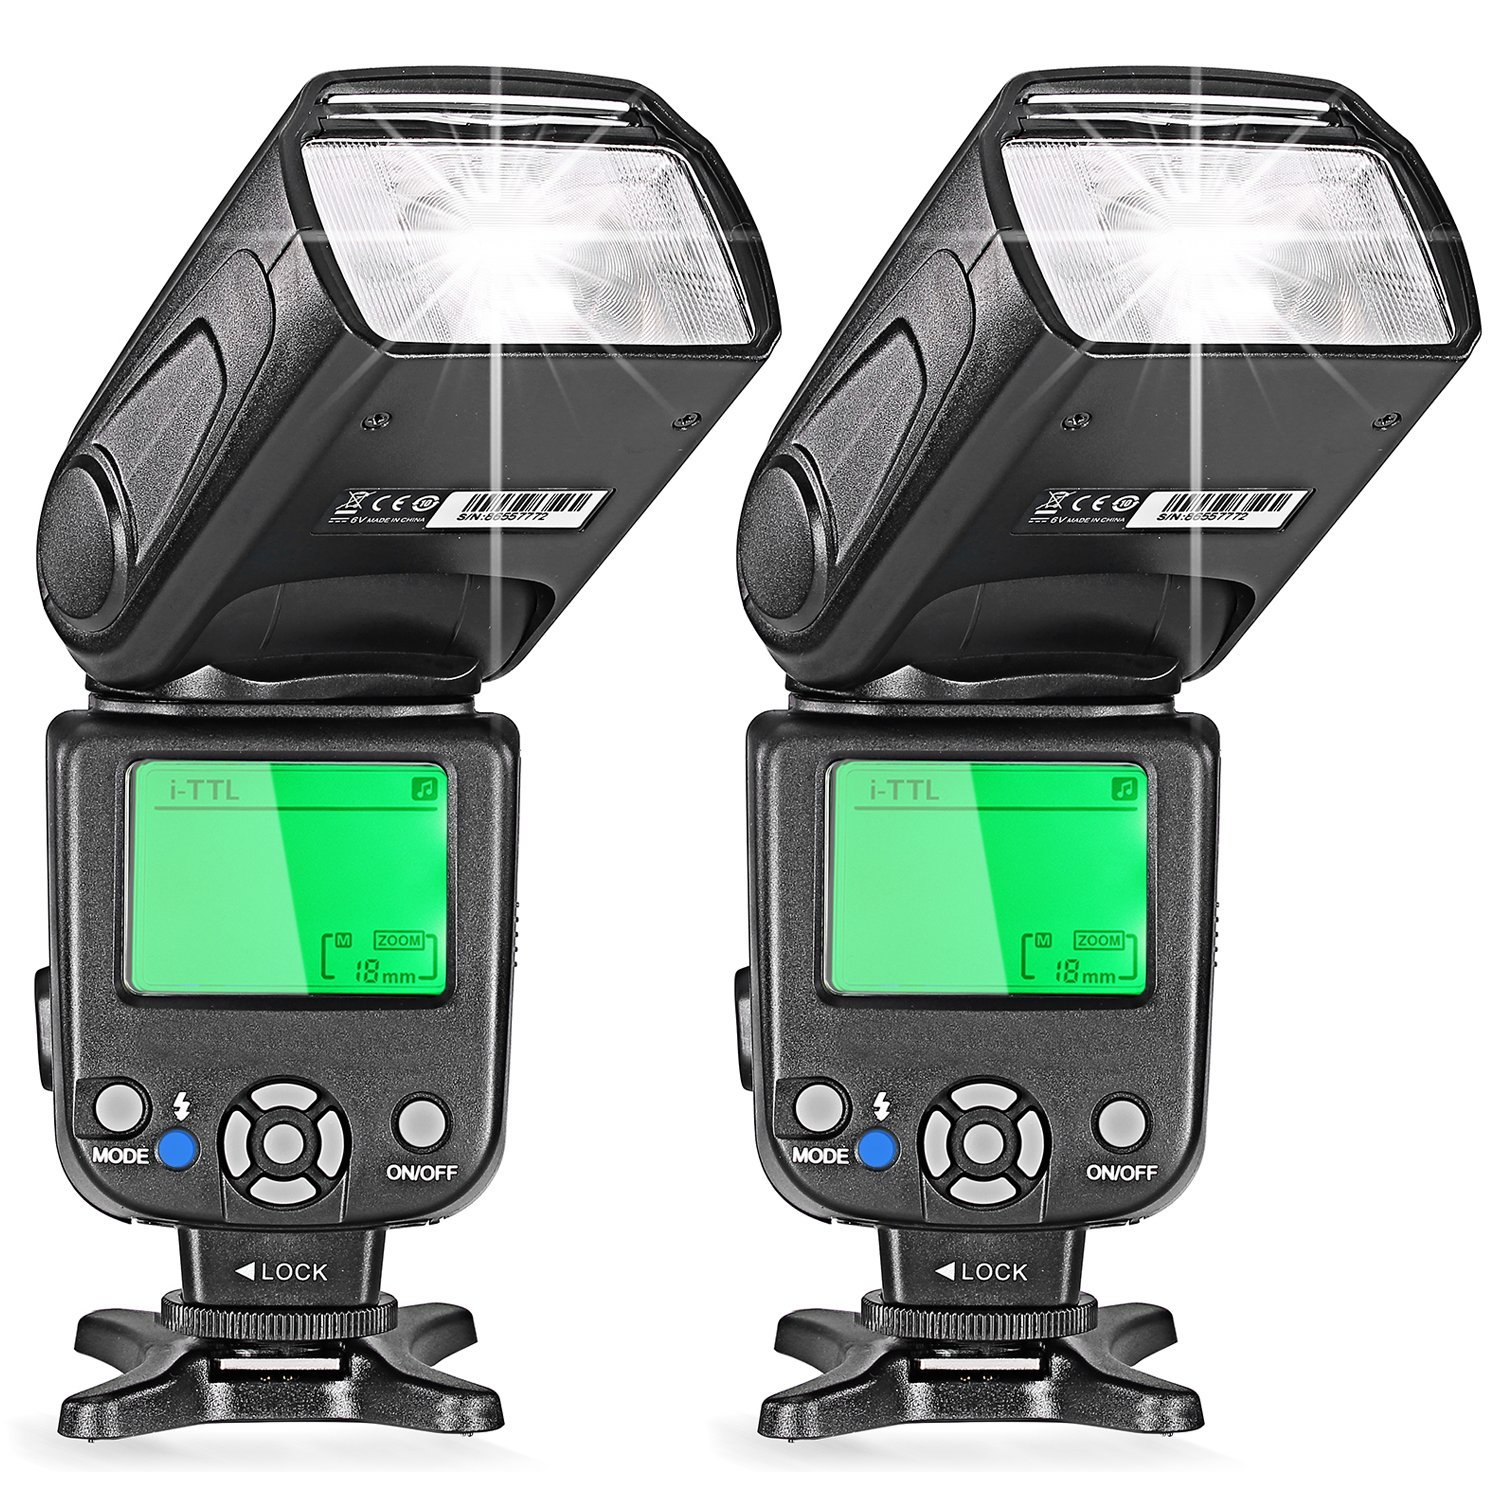 Neewer® Two i-TTL Flash Speedlite for Nikon DSLR Camera Such as D7200 D7100 D7000 D5200 D5100 D5000 D3000 D3100 D300 D700 D600 D90 D80 D70 D70S D60 D50(NW-562)